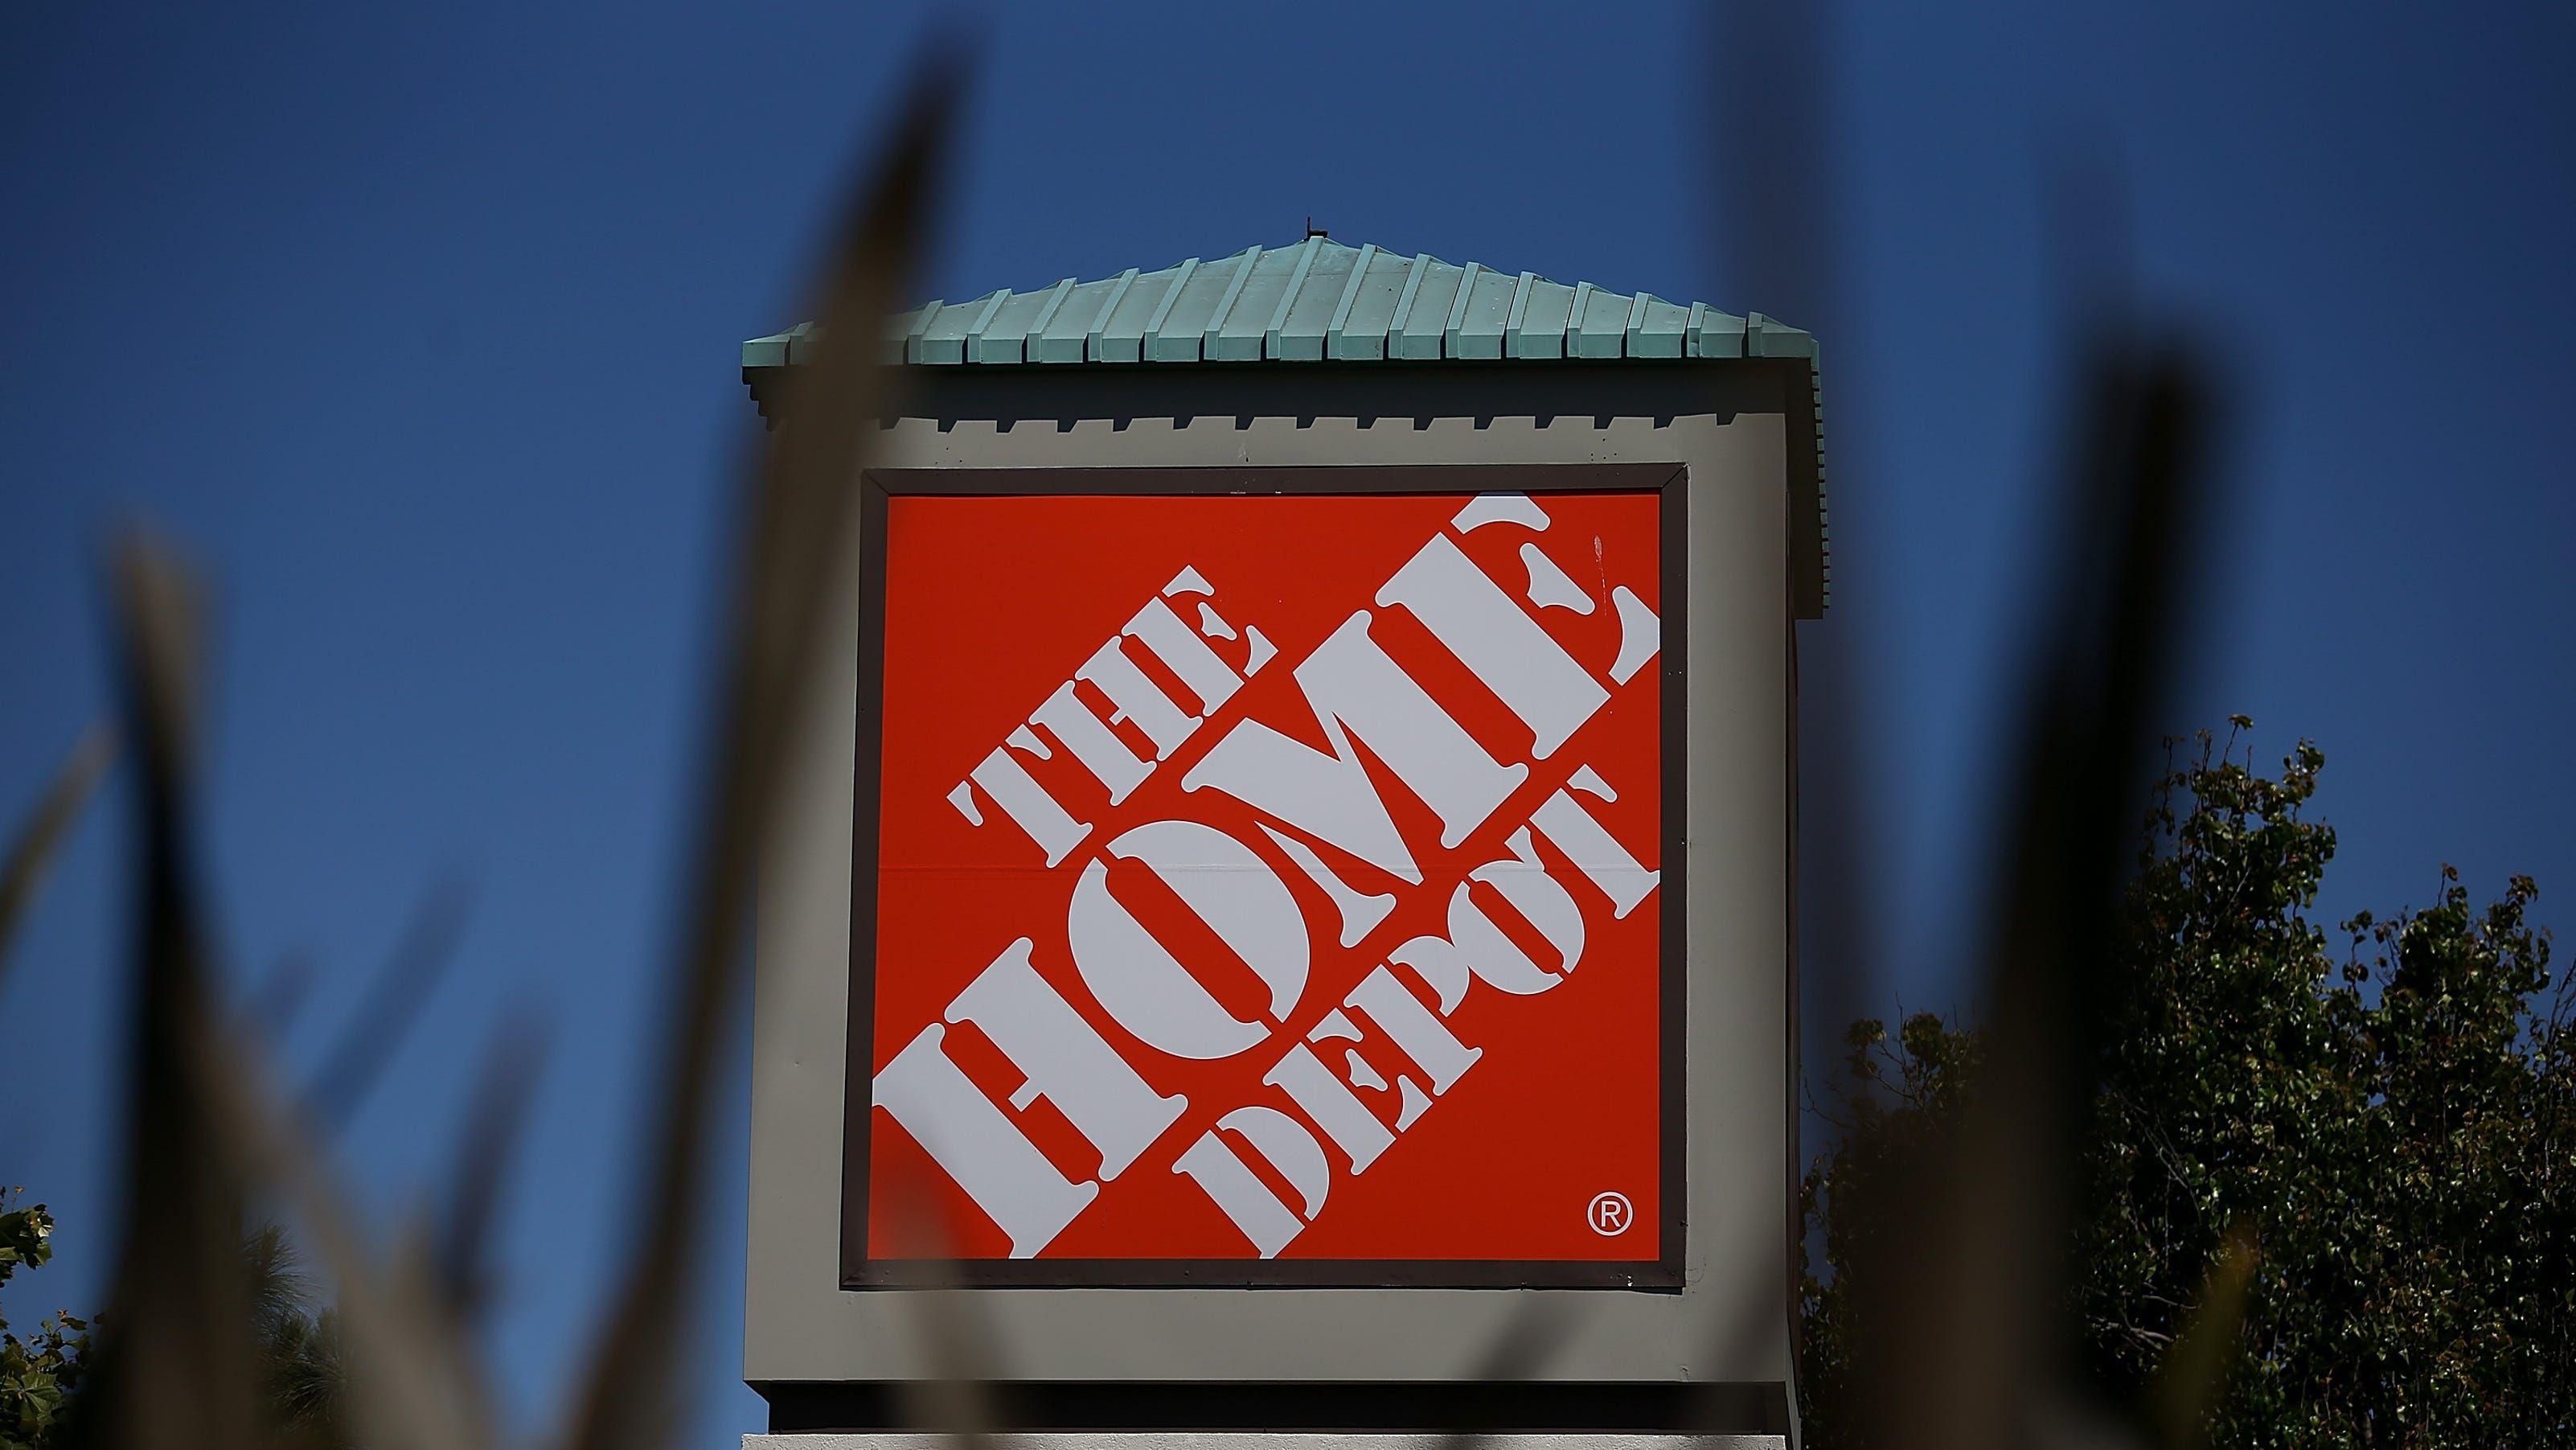 Home depot card breach put 56 million cards at risk for 0 home depot credit card